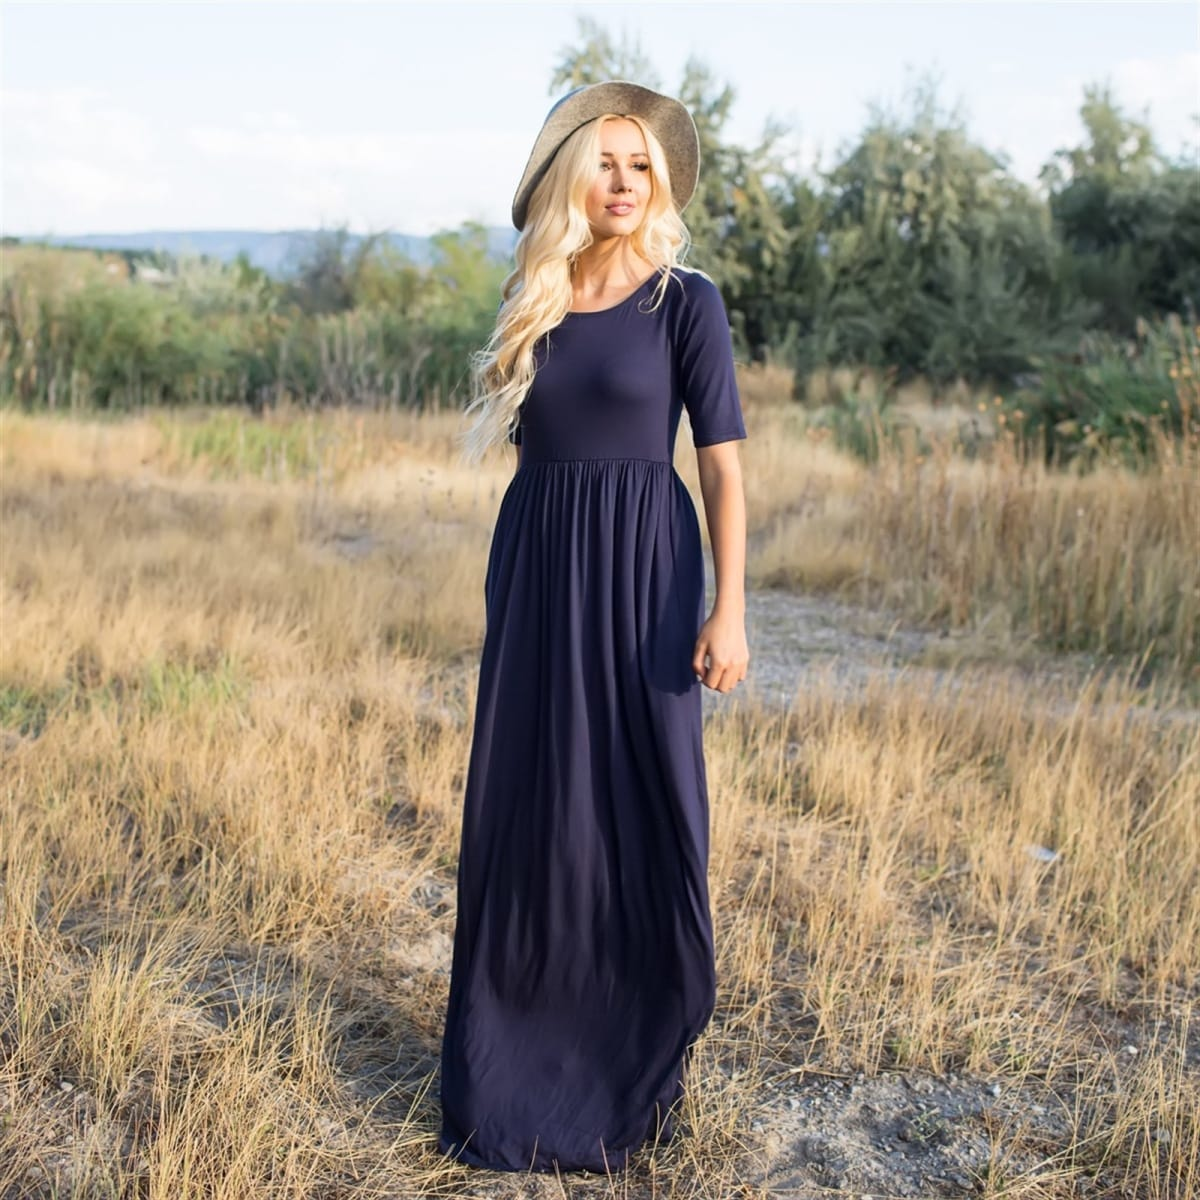 Summer dresses: woman wearing a hat and a navy blue maxi dress